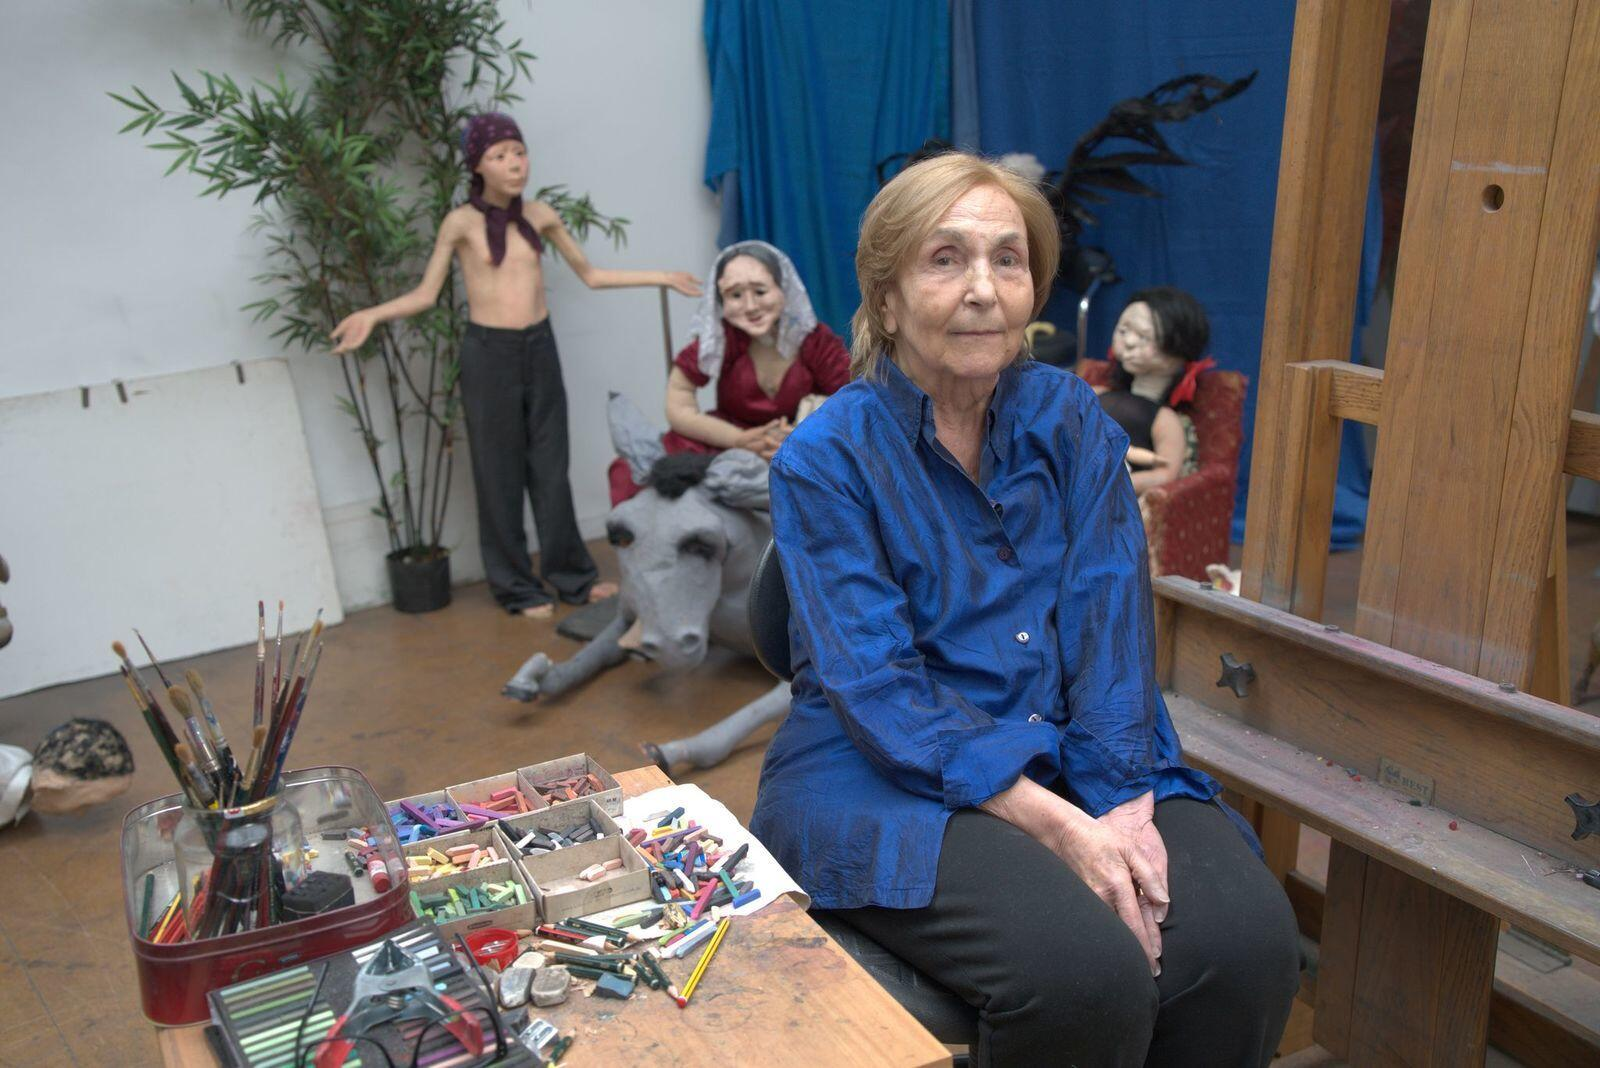 2: Paula Rego: One of the greatest figurative artists of her generation, who places women at the centre of her work